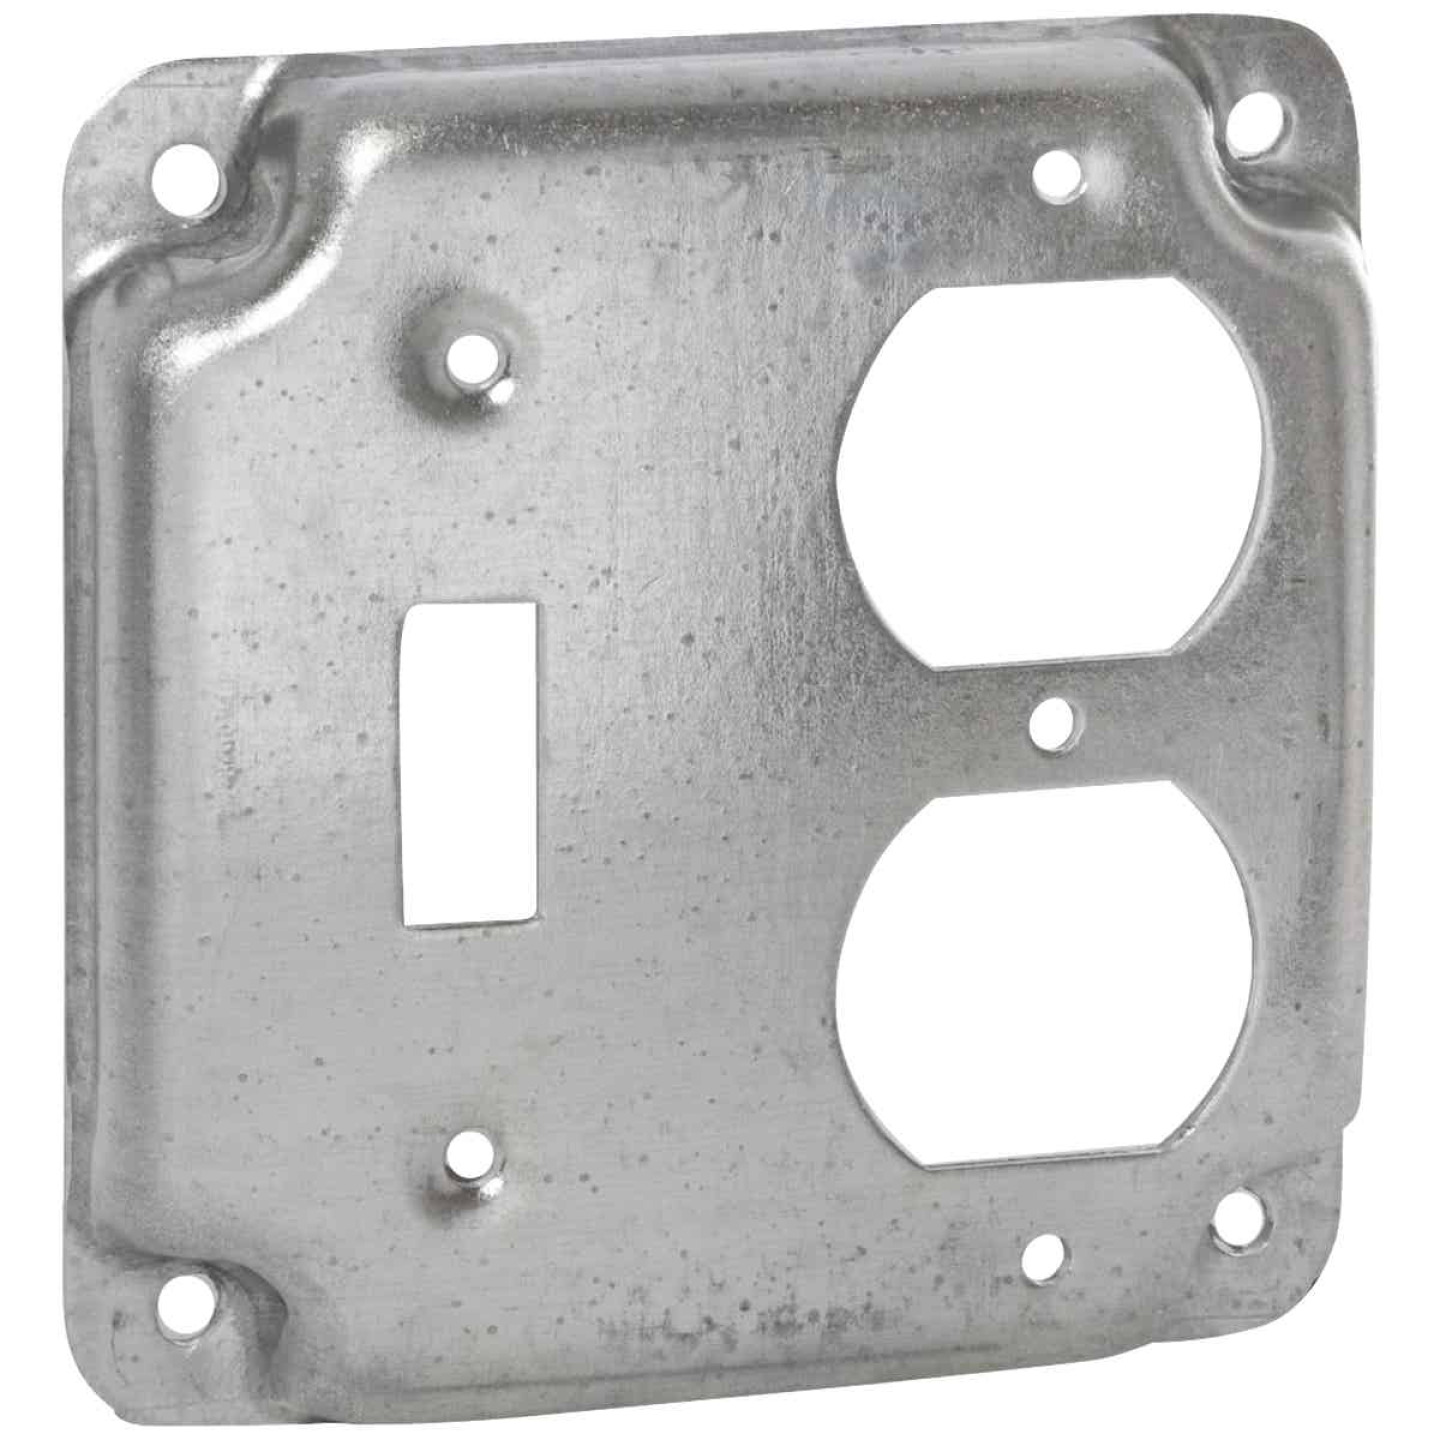 Raco Toggle Switch/Duplex Outlet 4 In. x 4 In. Square Device Cover Image 1